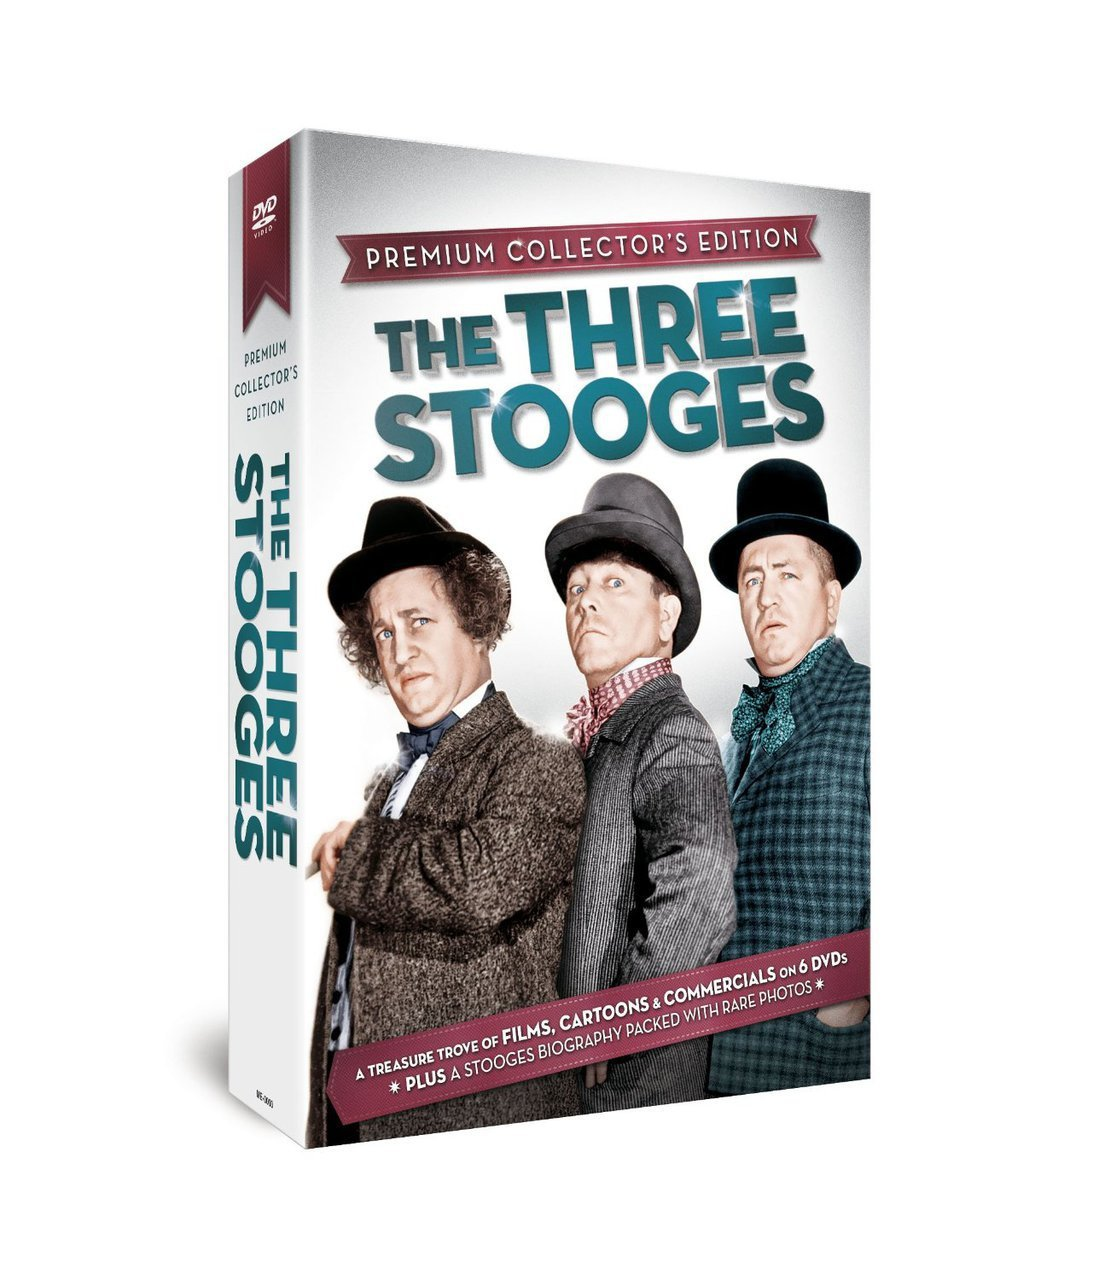 The three stooges   premium collector s edition   6 dvds plus hardcover book